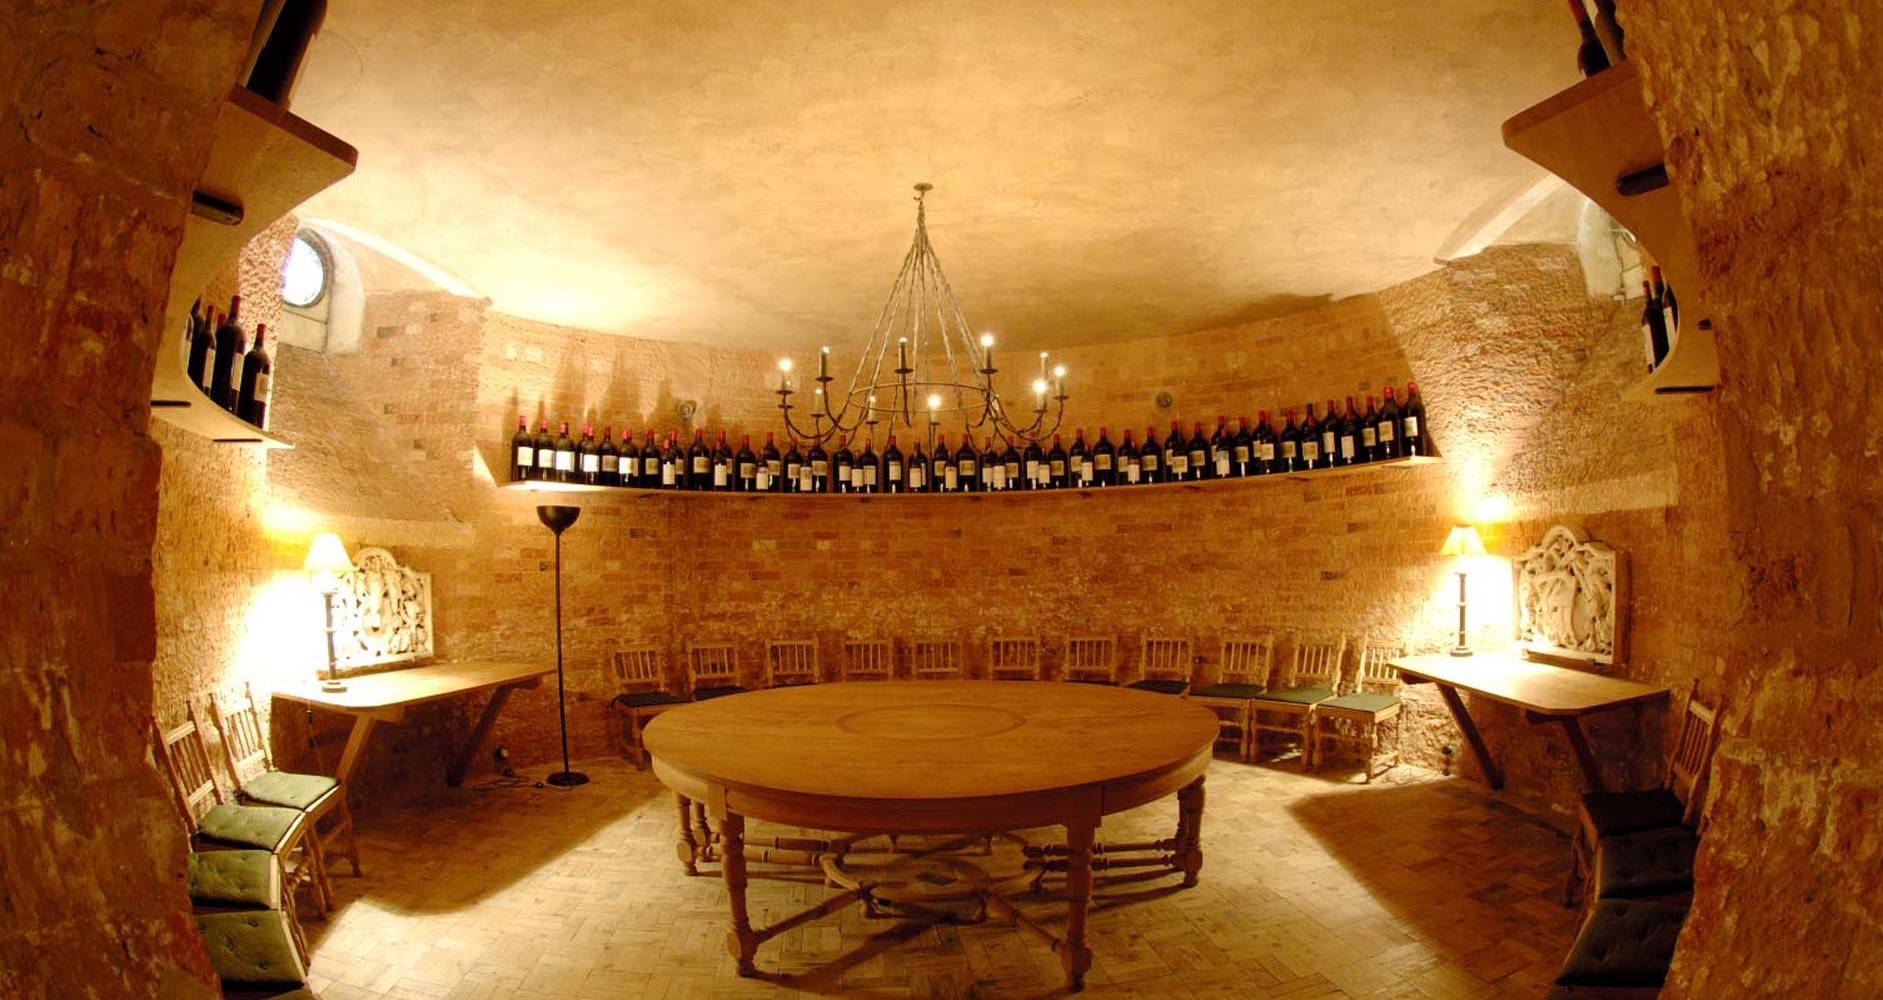 The tasting room in the Waddesdon Wine Cellars